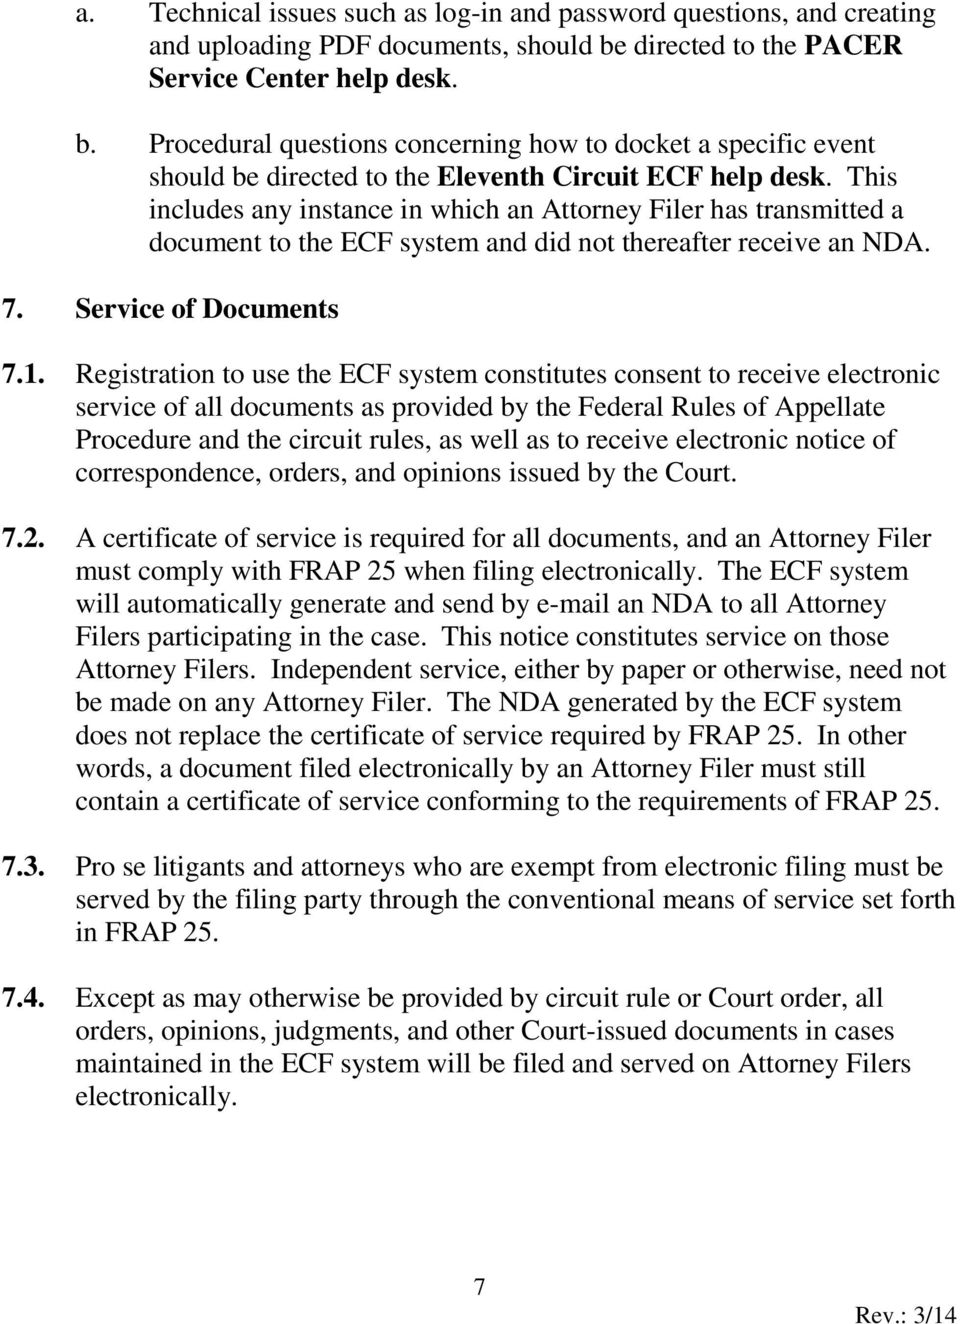 This includes any instance in which an Attorney Filer has transmitted a document to the ECF system and did not thereafter receive an NDA. 7. Service of Documents 7.1.